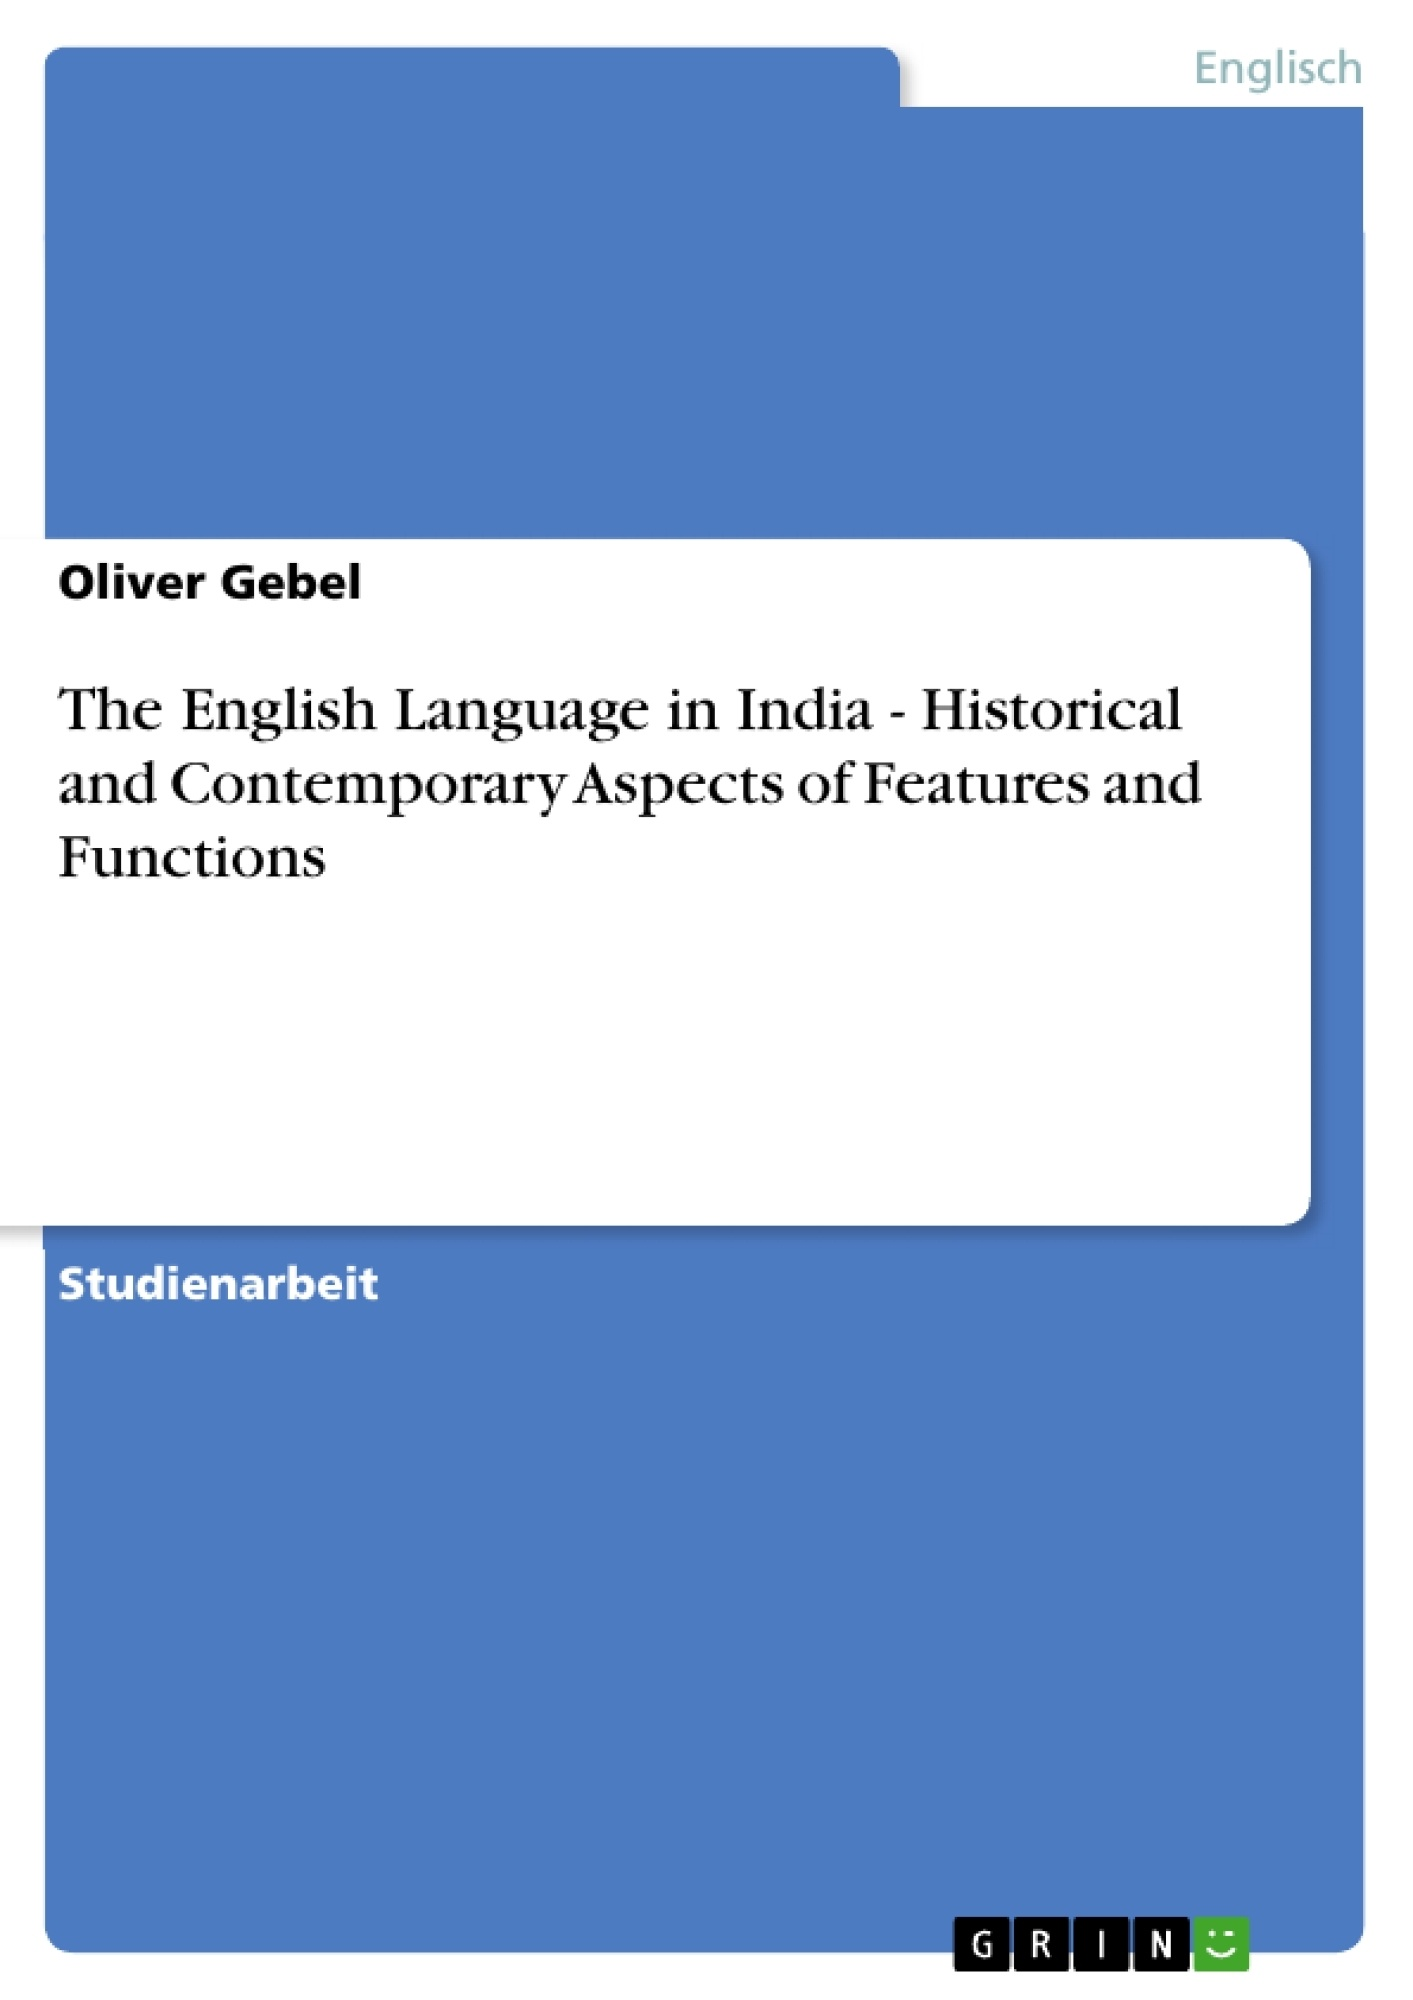 Titel: The English Language in India - Historical and Contemporary Aspects of Features and Functions